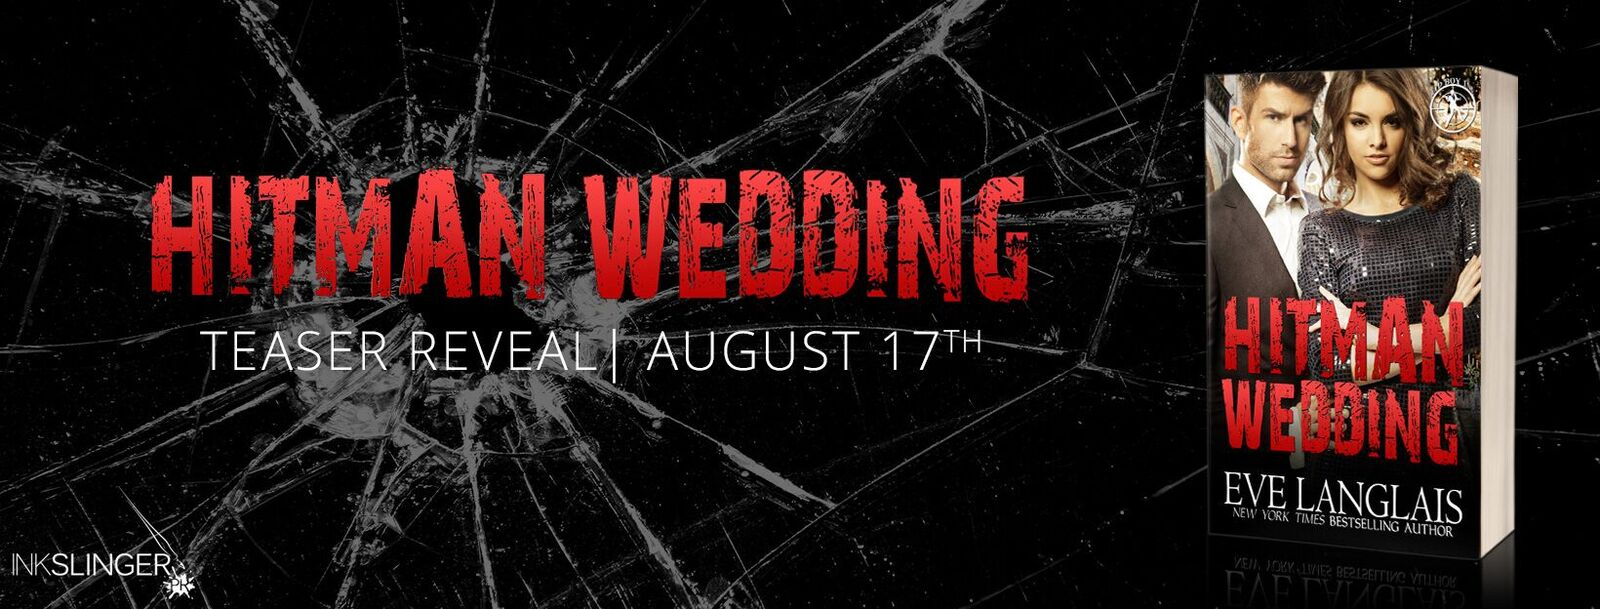 Teaser Reveal: Hitman Wedding by Eve Langlais